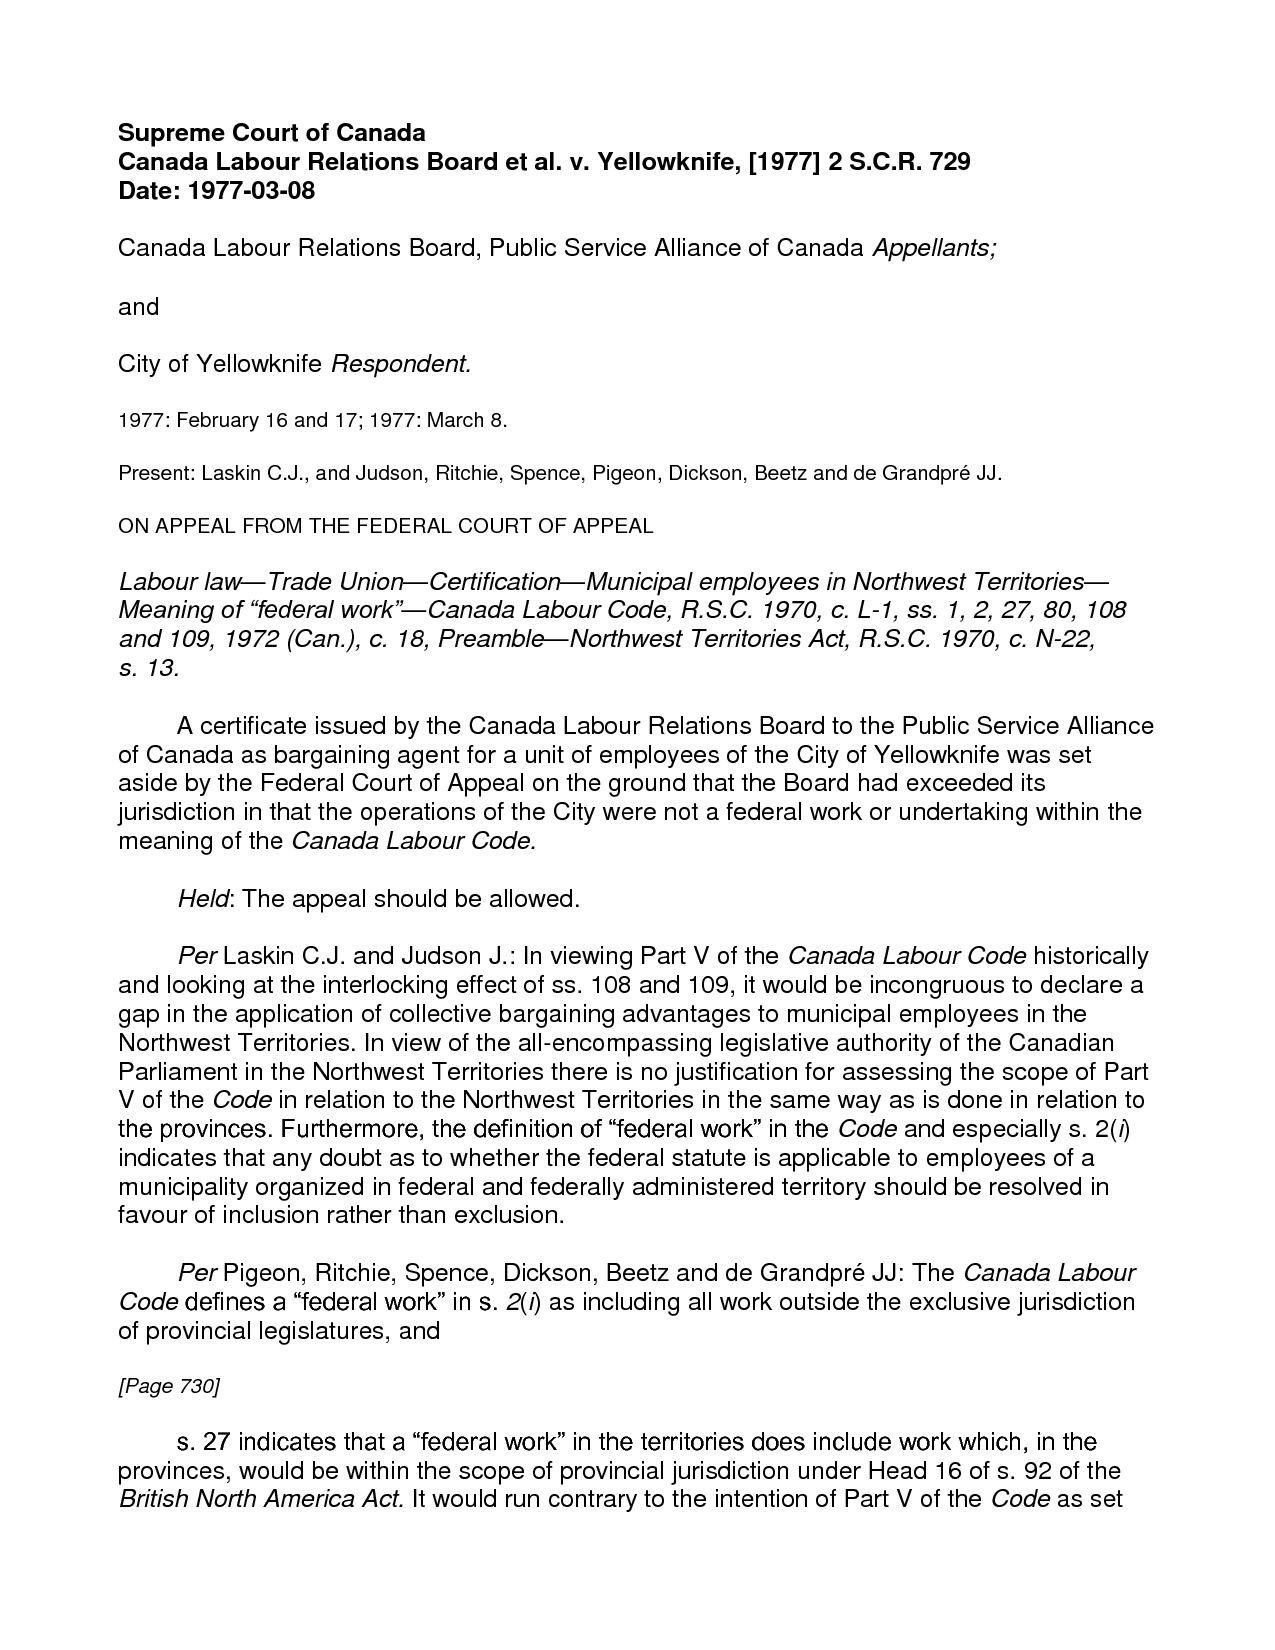 Character Reference Letter For Court Hearingcharacter Reference inside Formal Letter Format To Court 22344